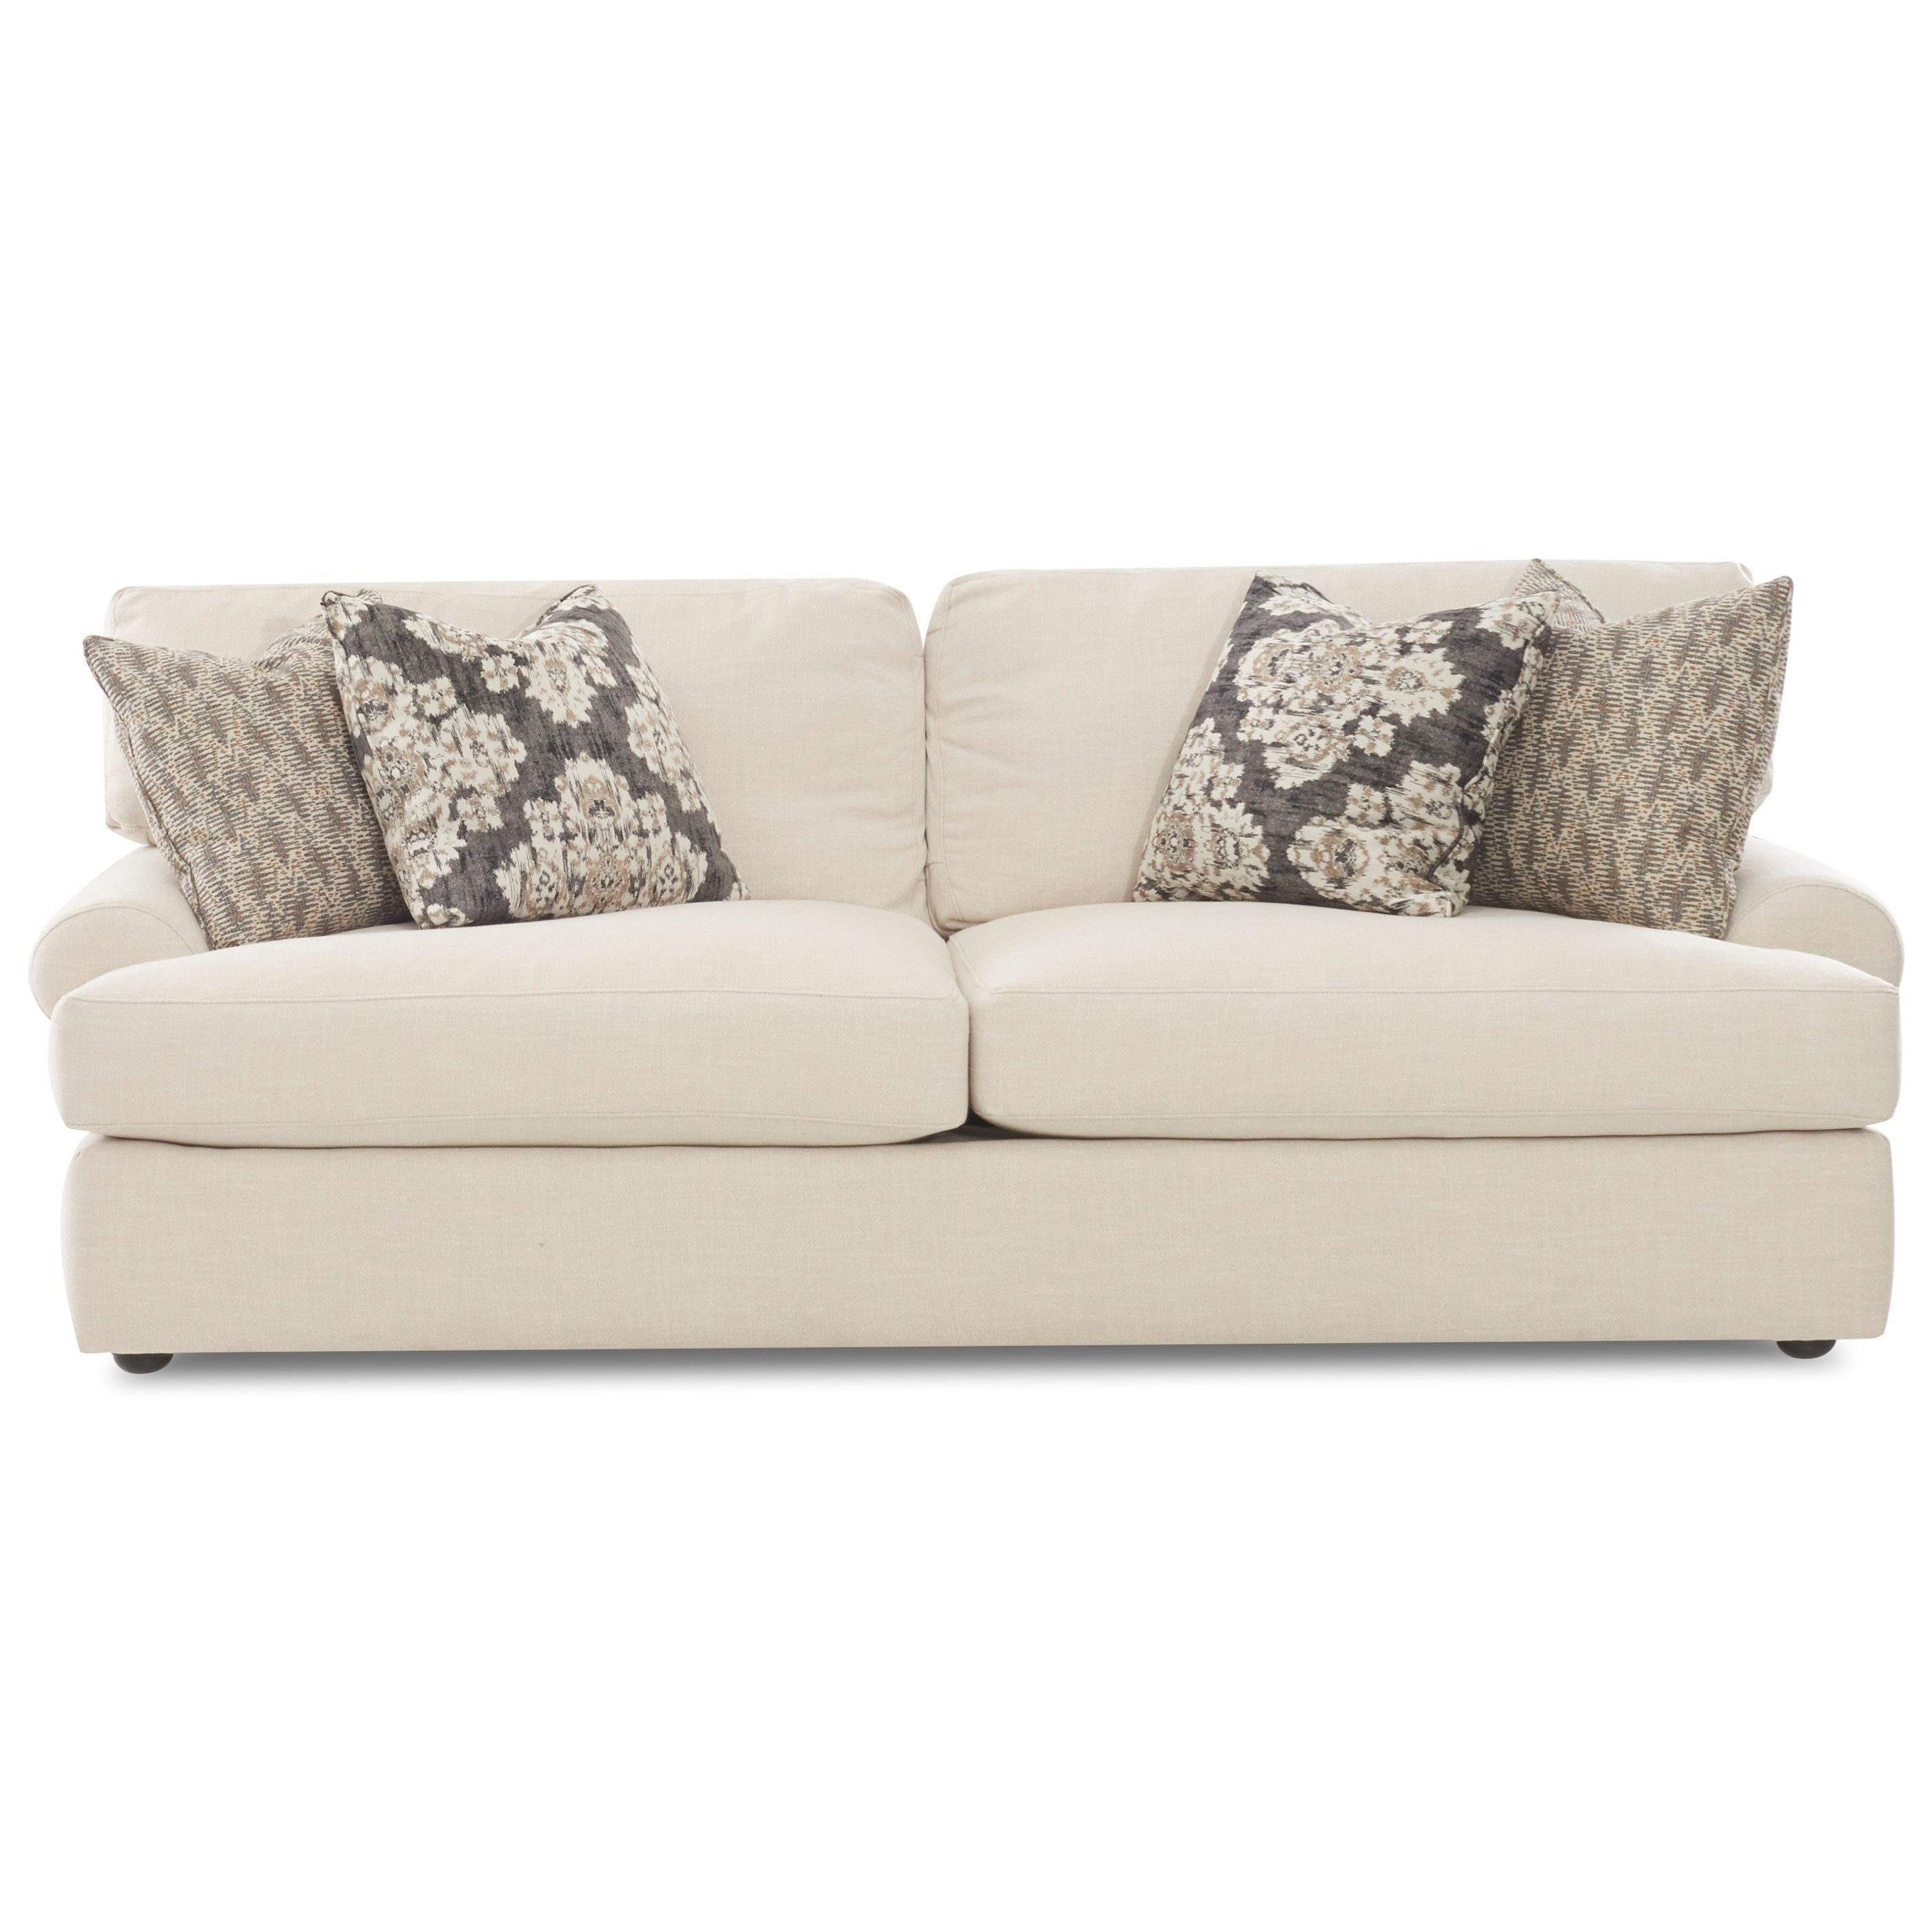 Sofa w/ 4 Pillows